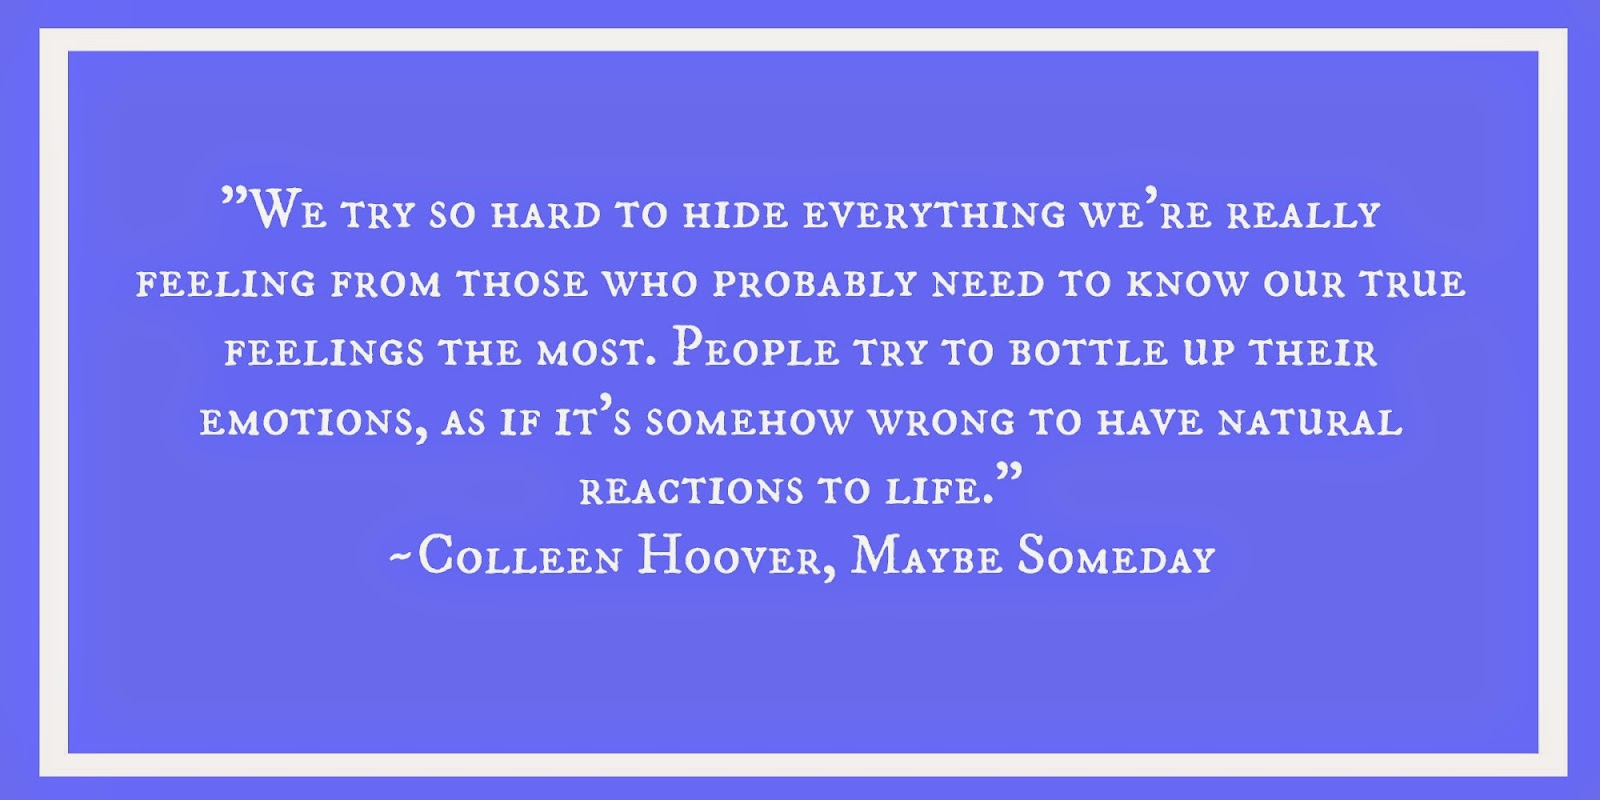 Colleen Hoover, quote